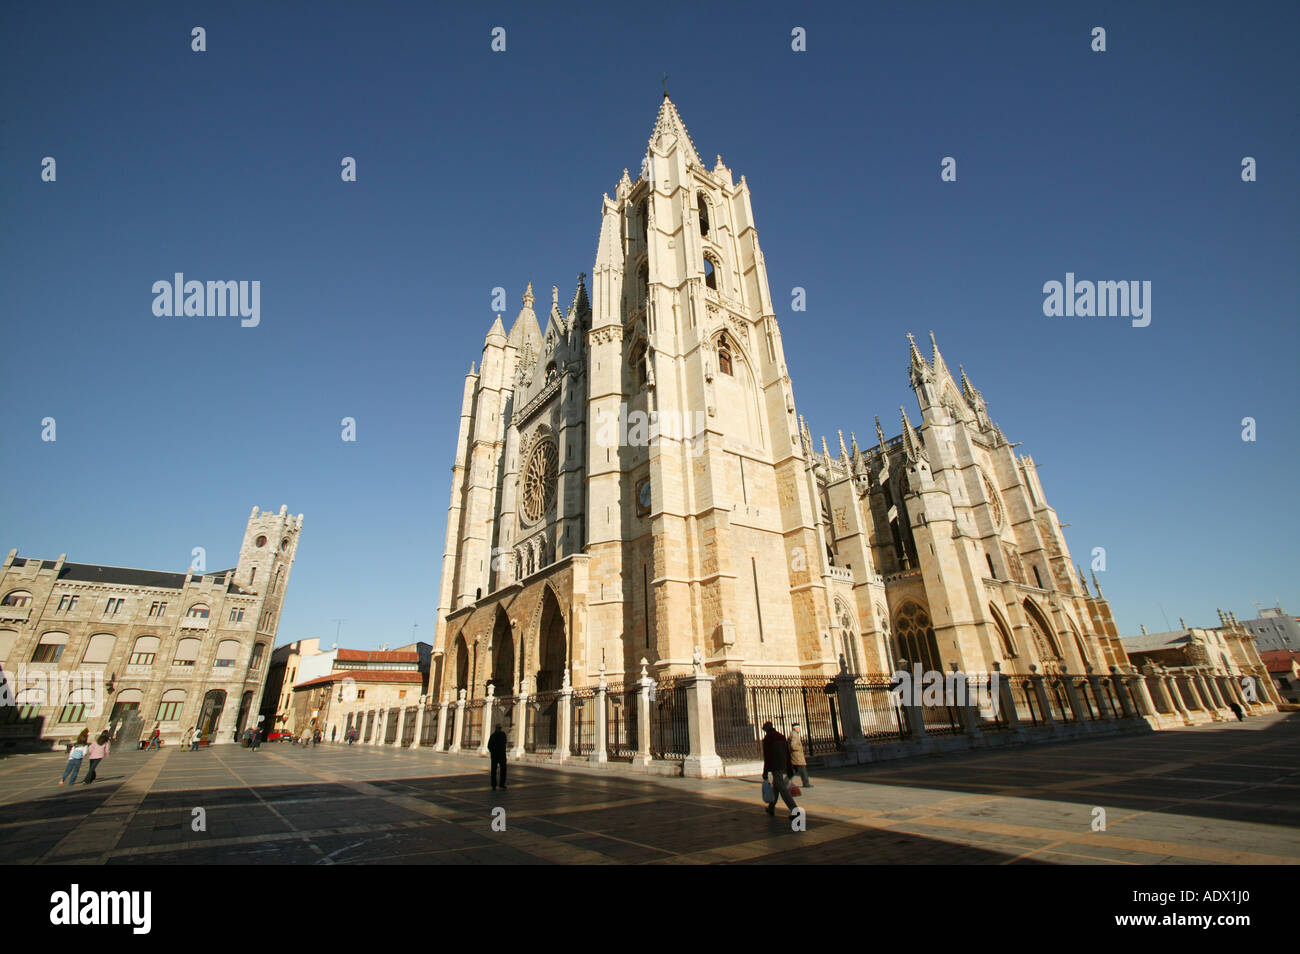 The King Ordoño II, Christian, Spain, Cathedral of León, daylight, Leon, monument, church, art, arquitecture, travel, holidays - Stock Image